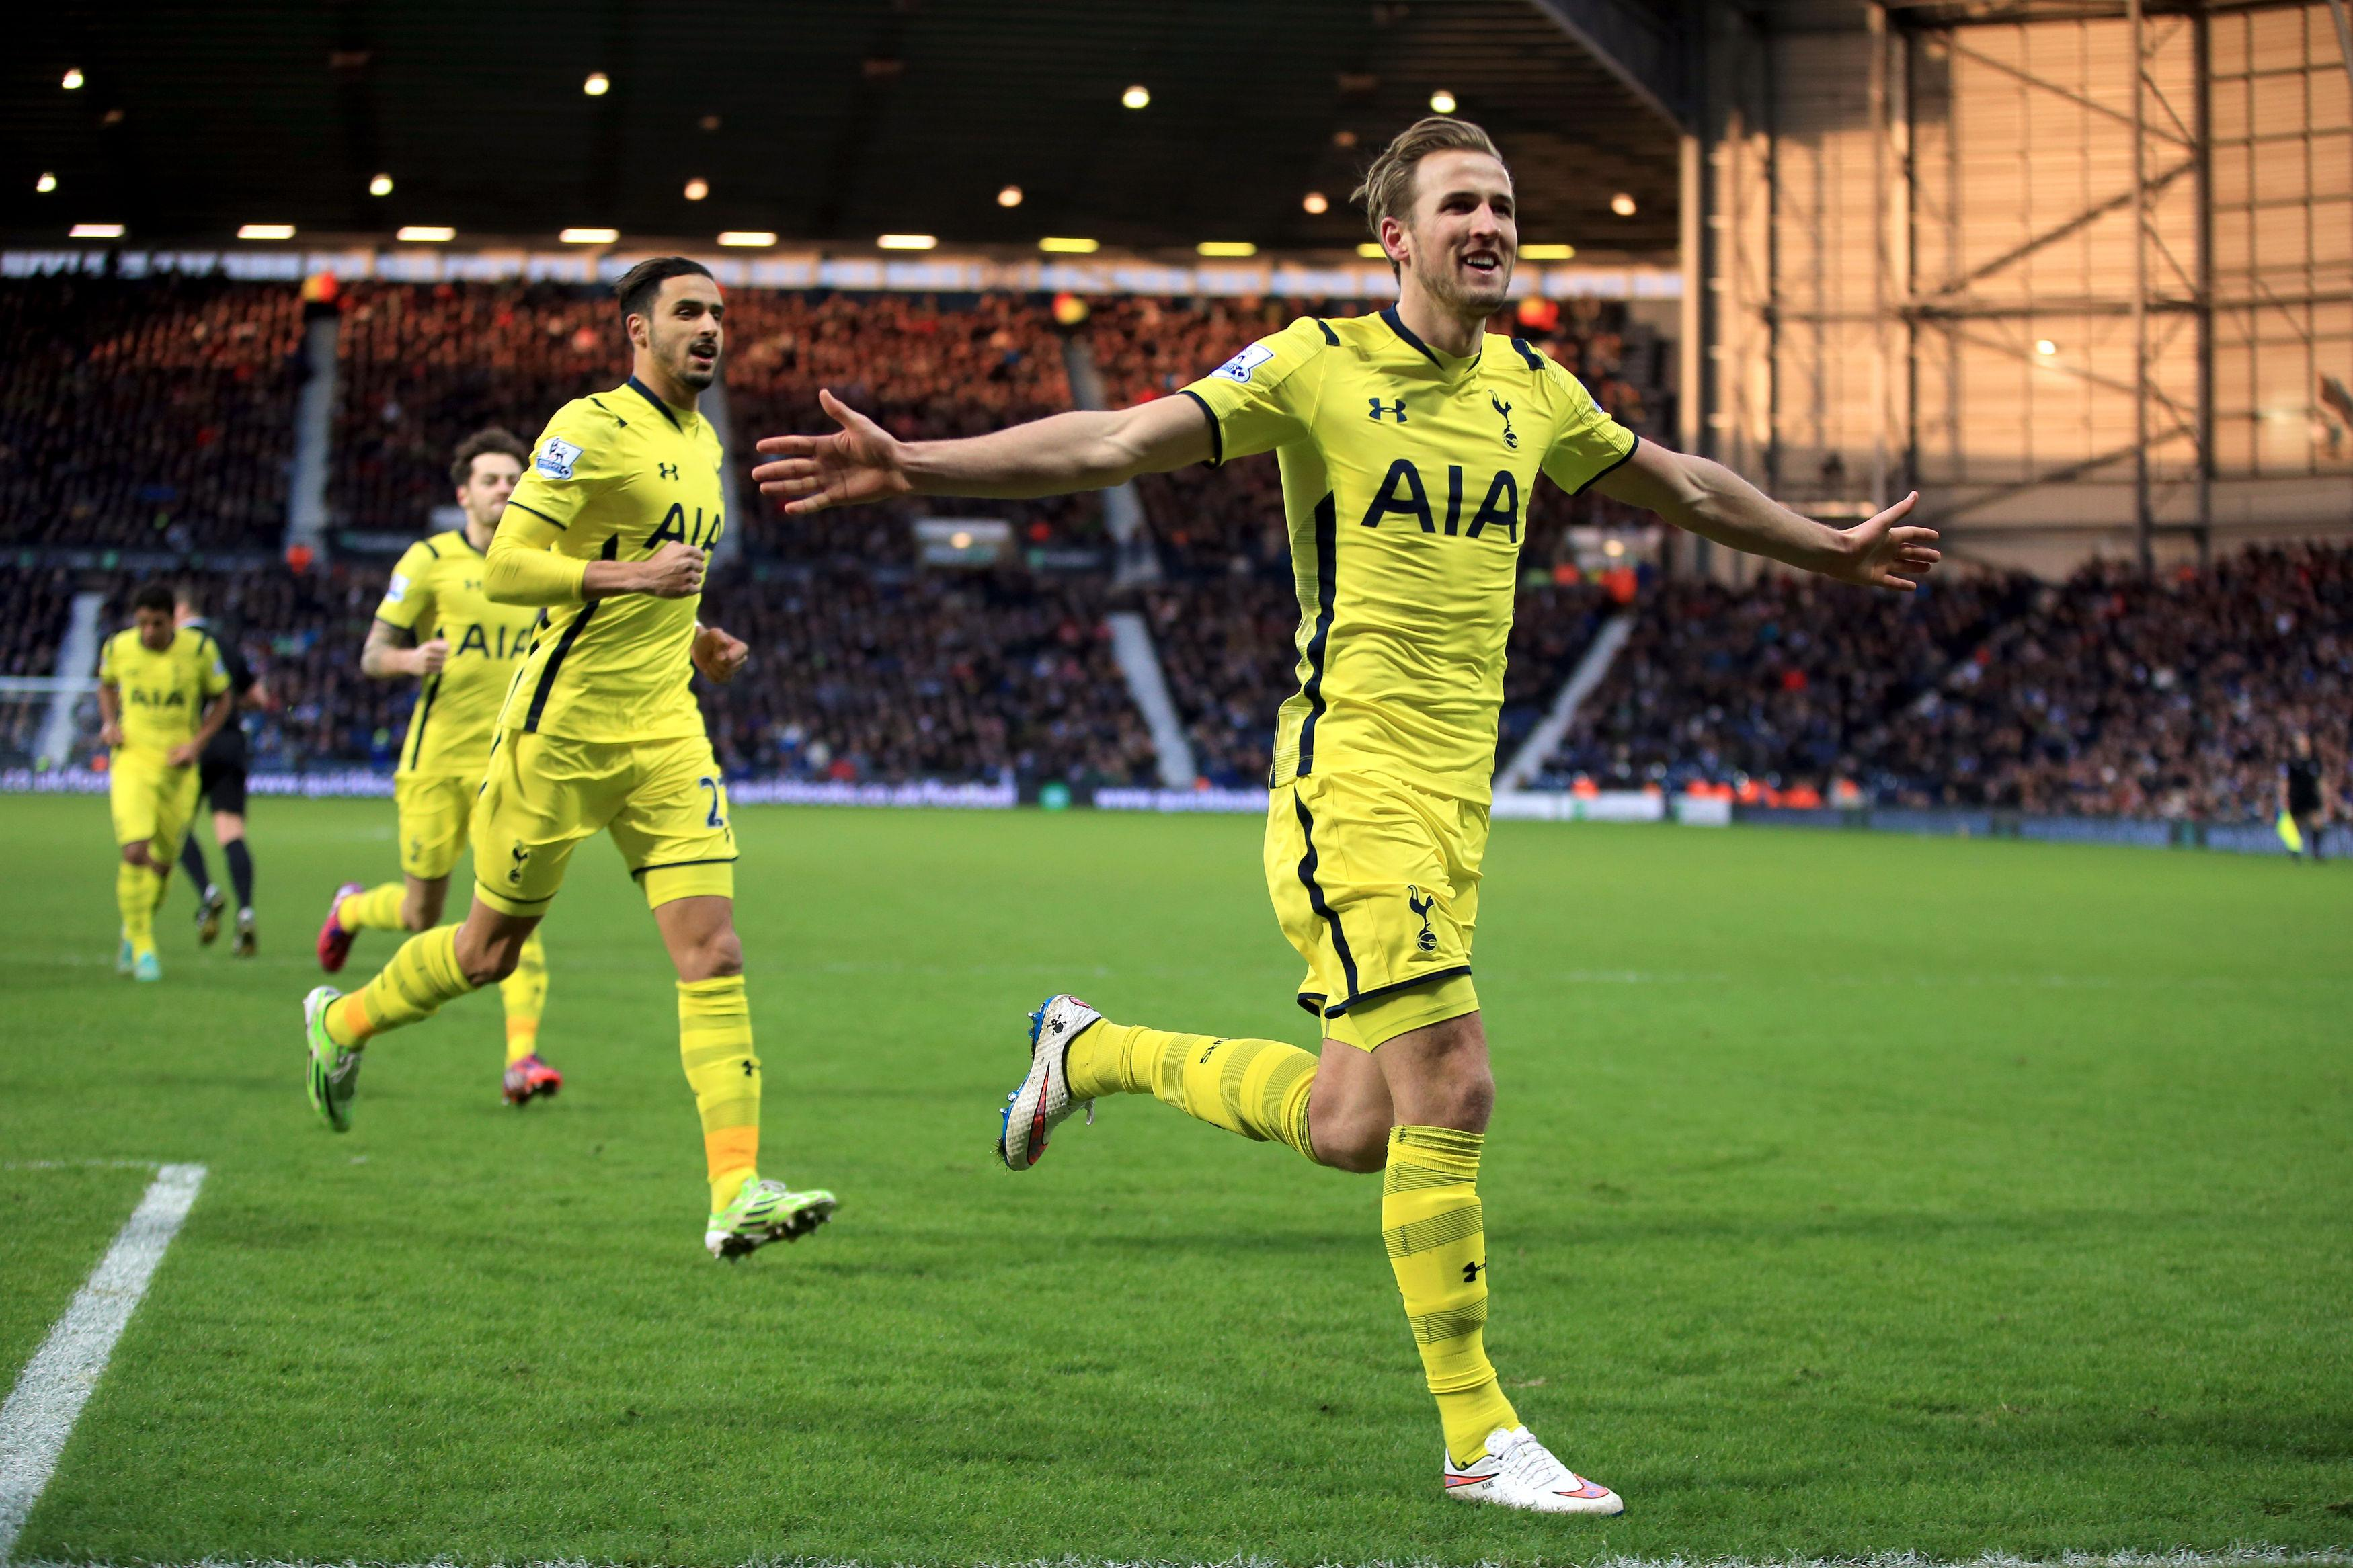 Kane scores 2 as Spurs beat West Brom 3-0